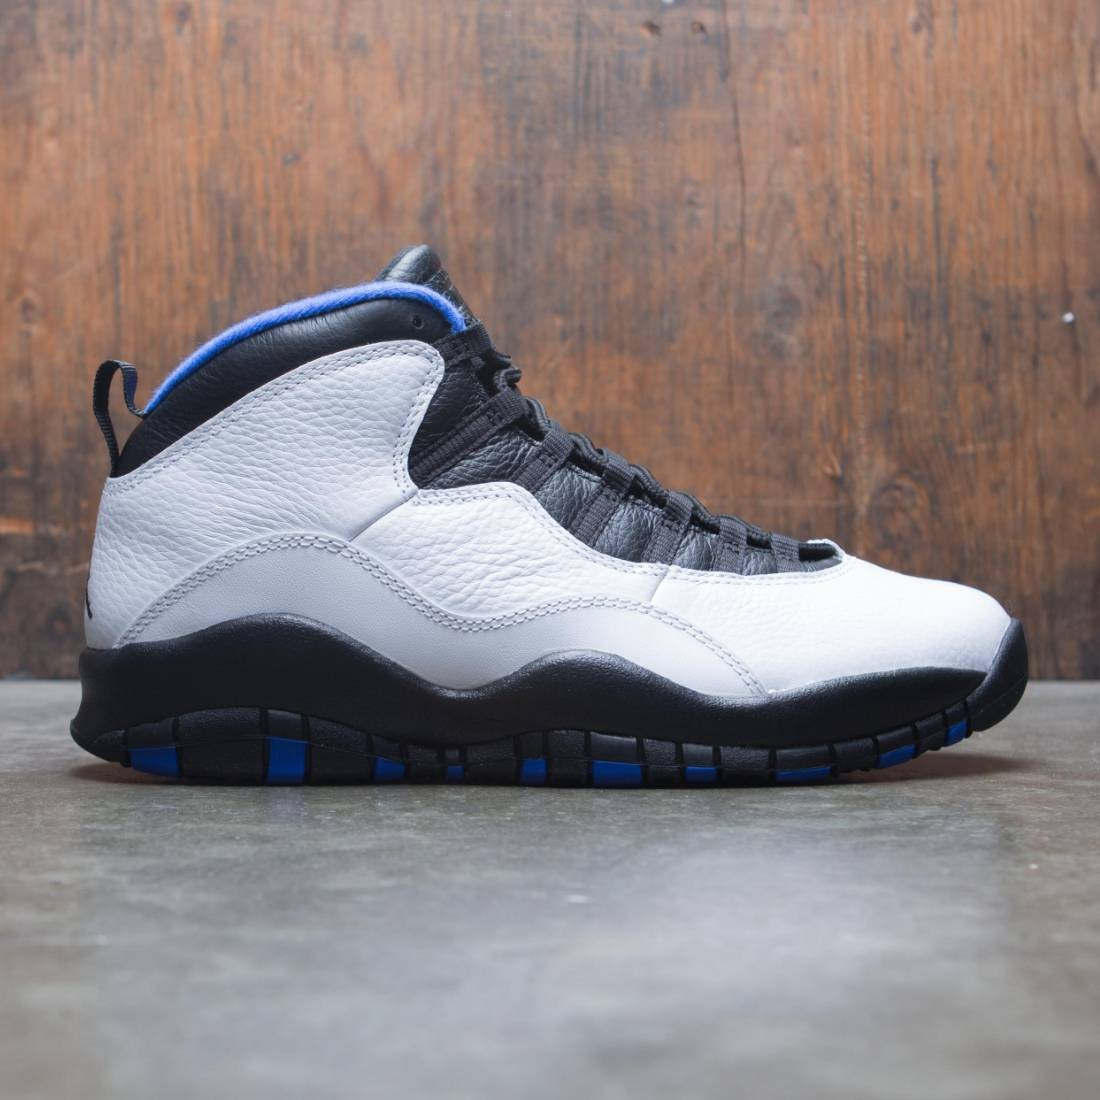 ae288c909812d4 jordan men air jordan 10 retro white black royal blue metallic silver